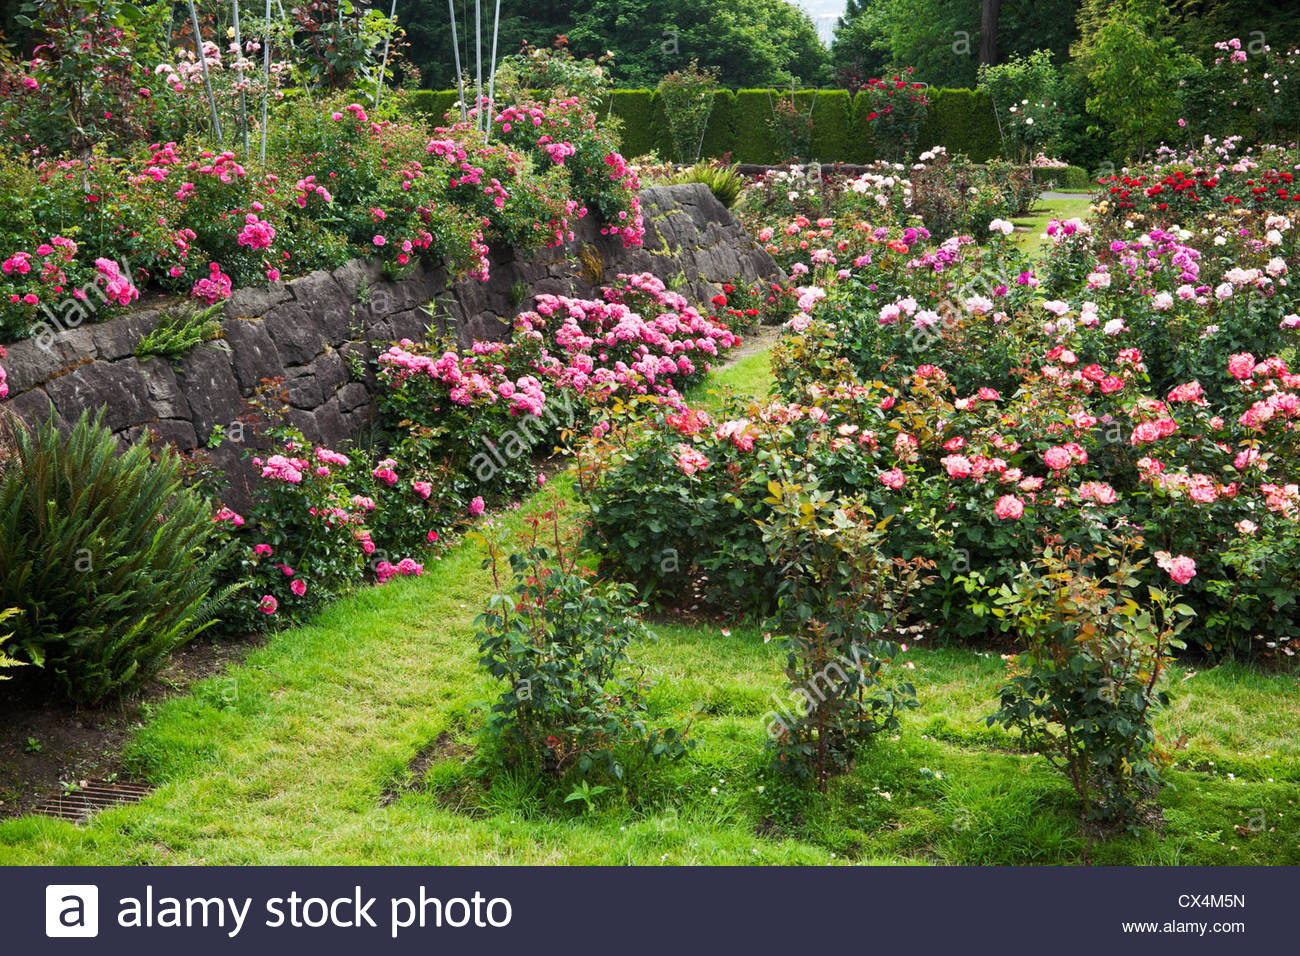 International rose test garden portland oregon stock photo 50505441 alamy for Portland international rose test garden